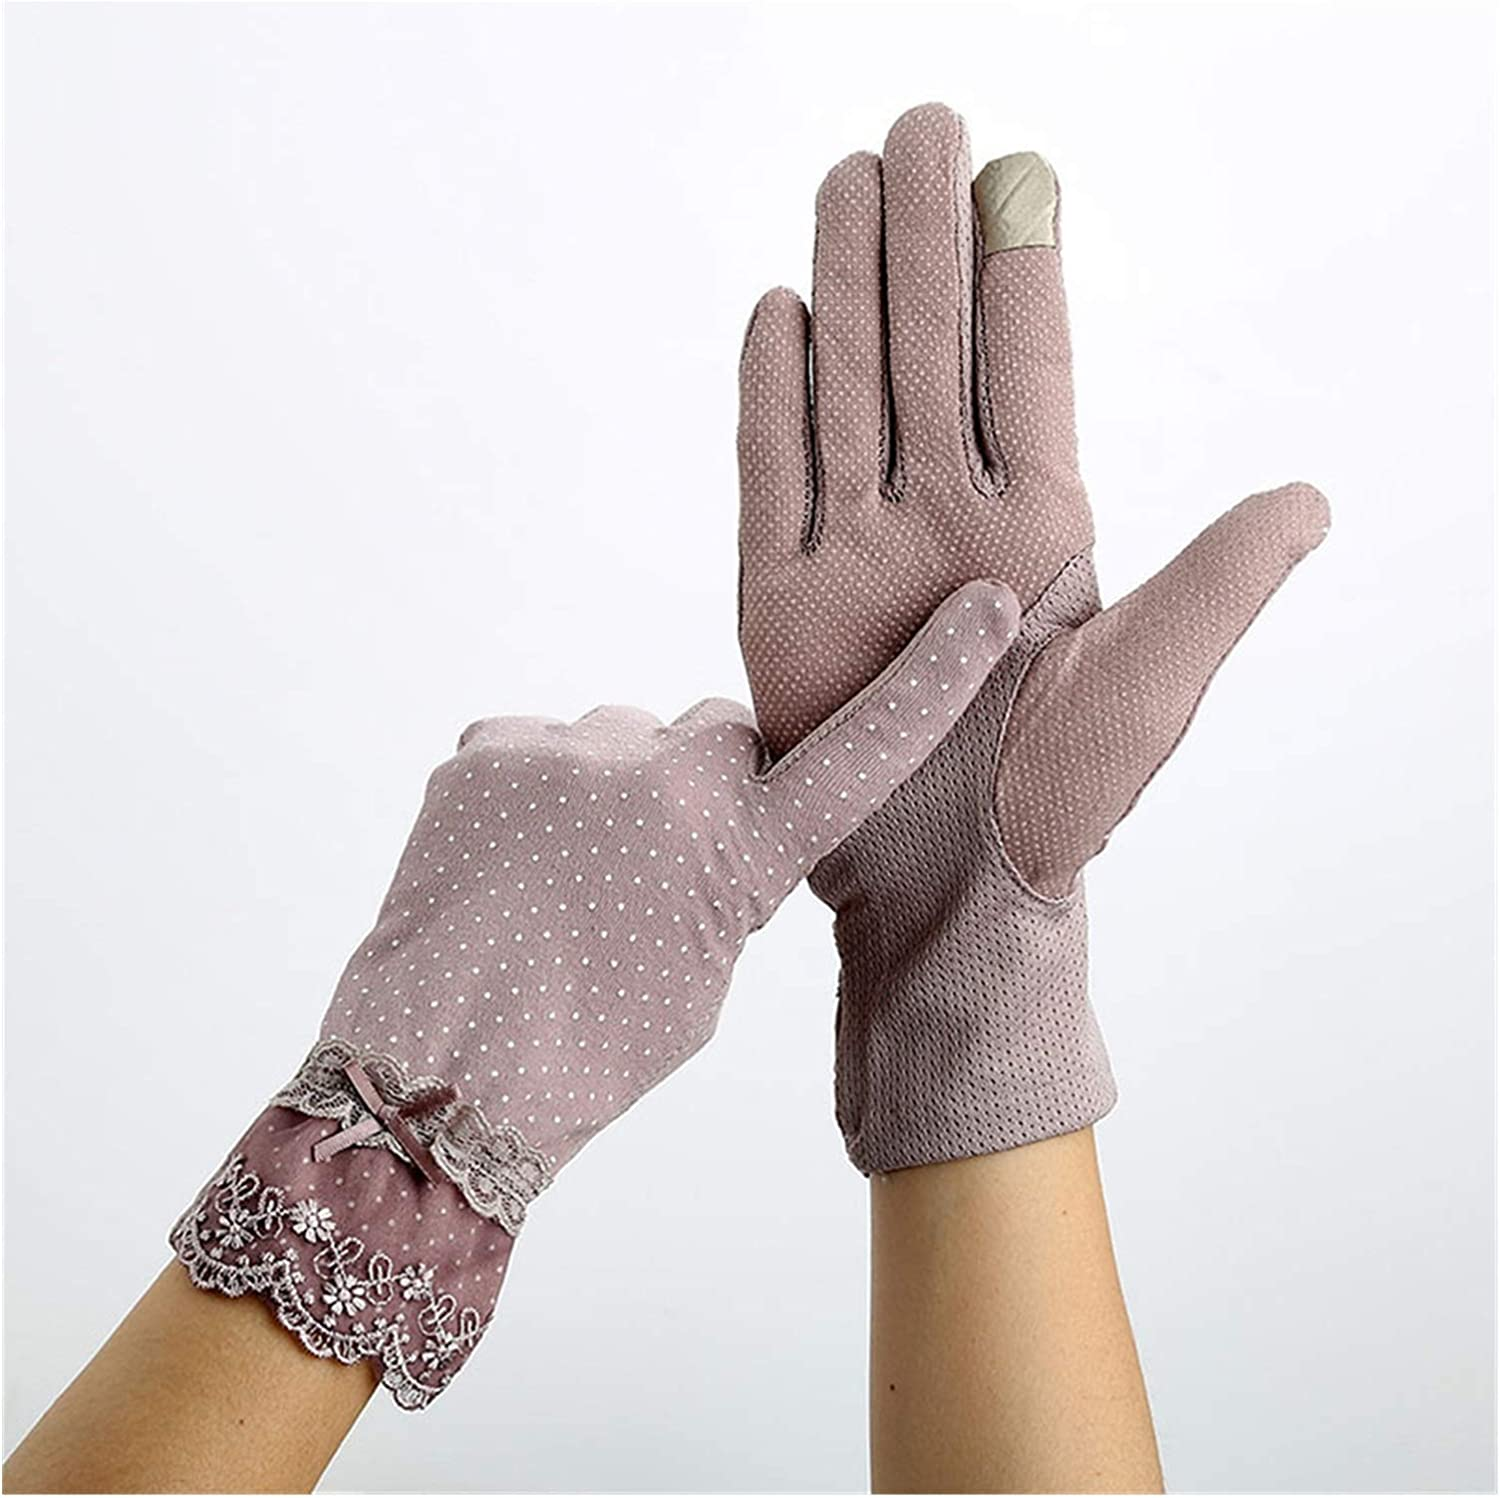 DMYONGLIAN Lace Gloves Women Sunscreen Gloves Summer Lace Stretch Touch Screen Mitten Anti-UV Wrist Short Slip Resistant Driving Glove Accessories (Color : Purple, Gloves Size : One Size)